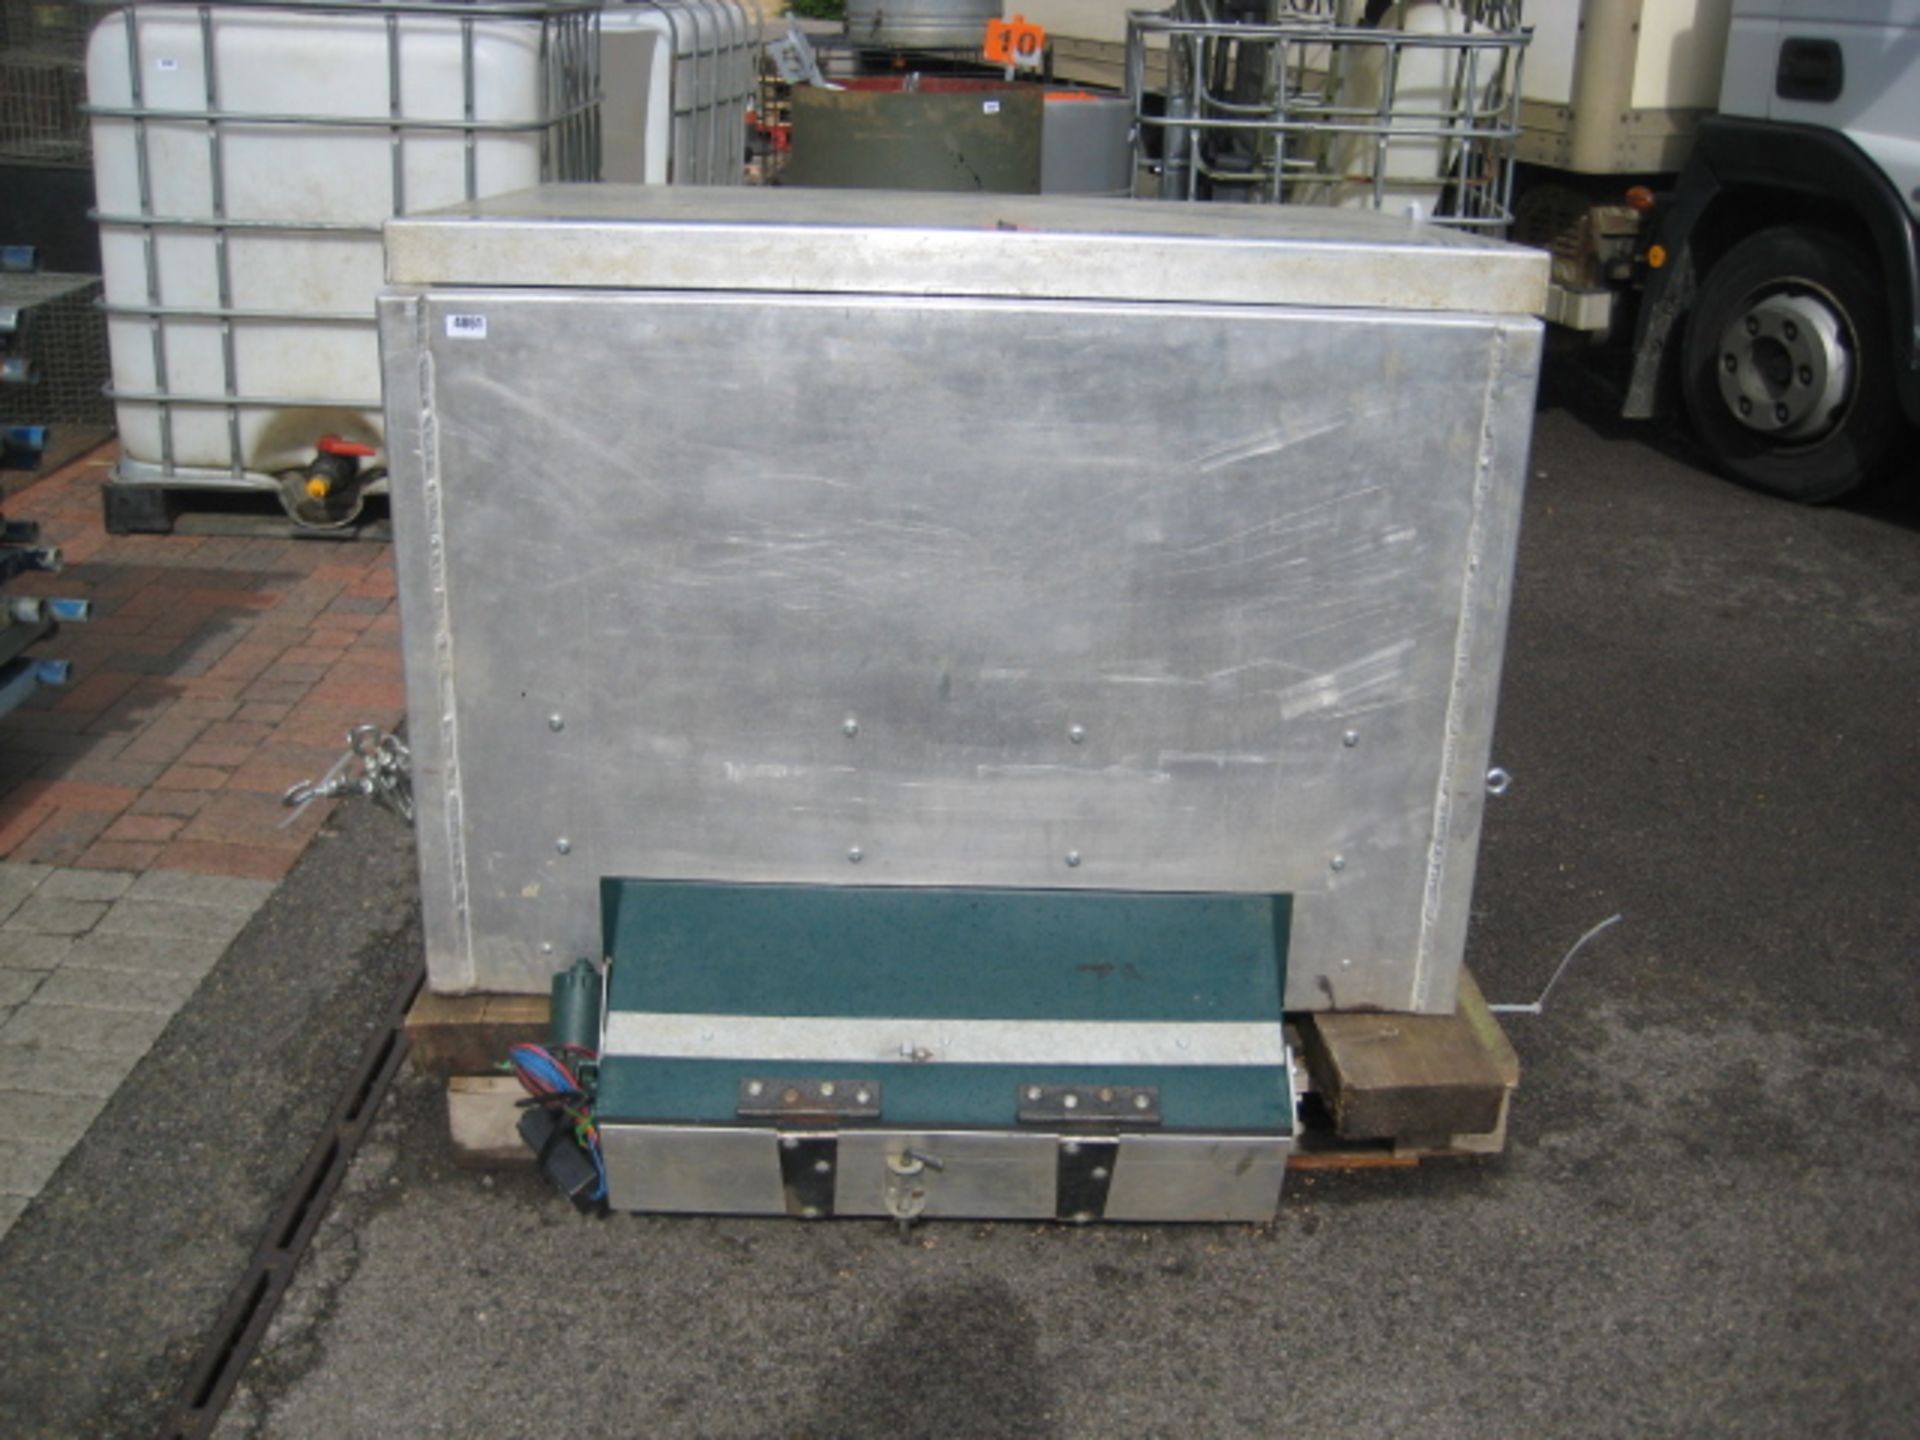 Lot 4061 - ATV mounted aluminium body powered feed spreader, 200kg capacity (adapted from Quill Productions)